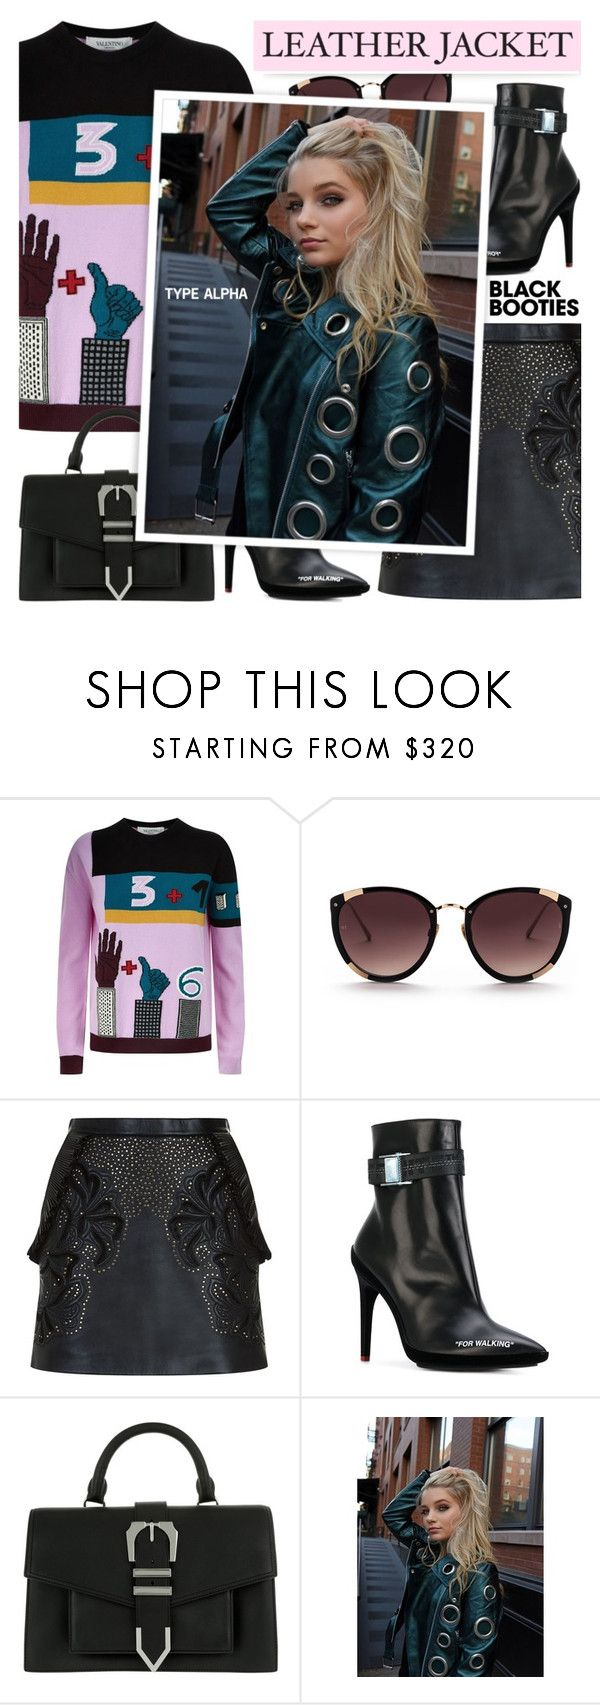 """""""Metallic Leather Moto with Grommets & Black Booties"""" by typealpha ❤ liked on Polyvore featuring Valentino, Rebecca Taylor, Elie Saab, Off-White and Versus"""